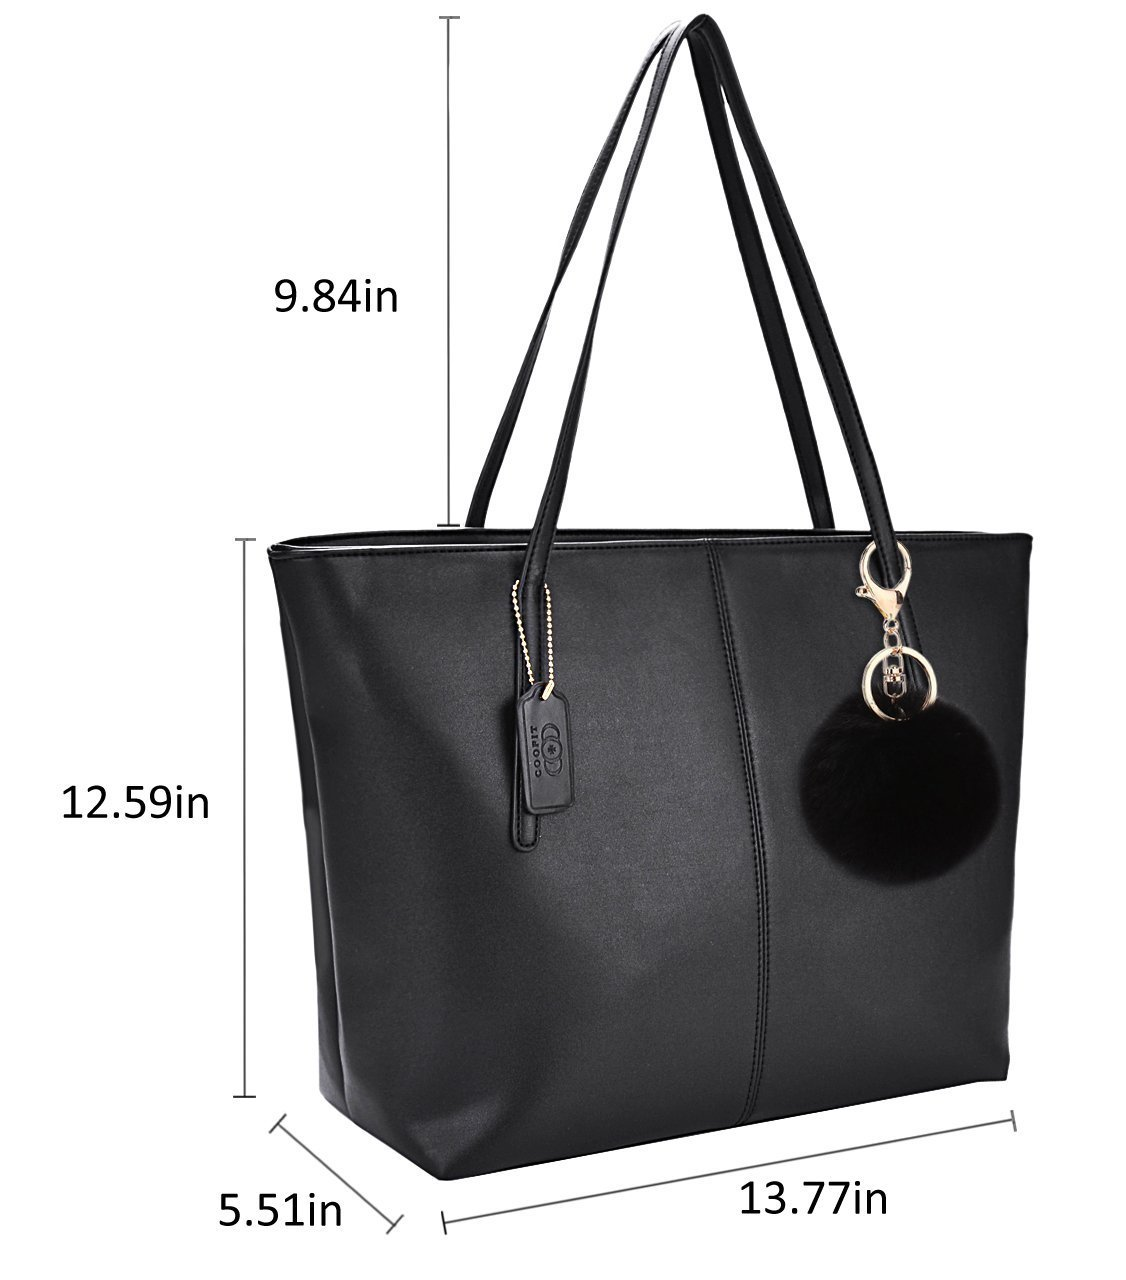 Buy Coofit Women Handbags, Fashion Designed Womens Handbags Shoulder Bag  Messenger Leather Tote Ladies Handbag Purse - Large, Black Pendant - Black  Online ... e13dced17a